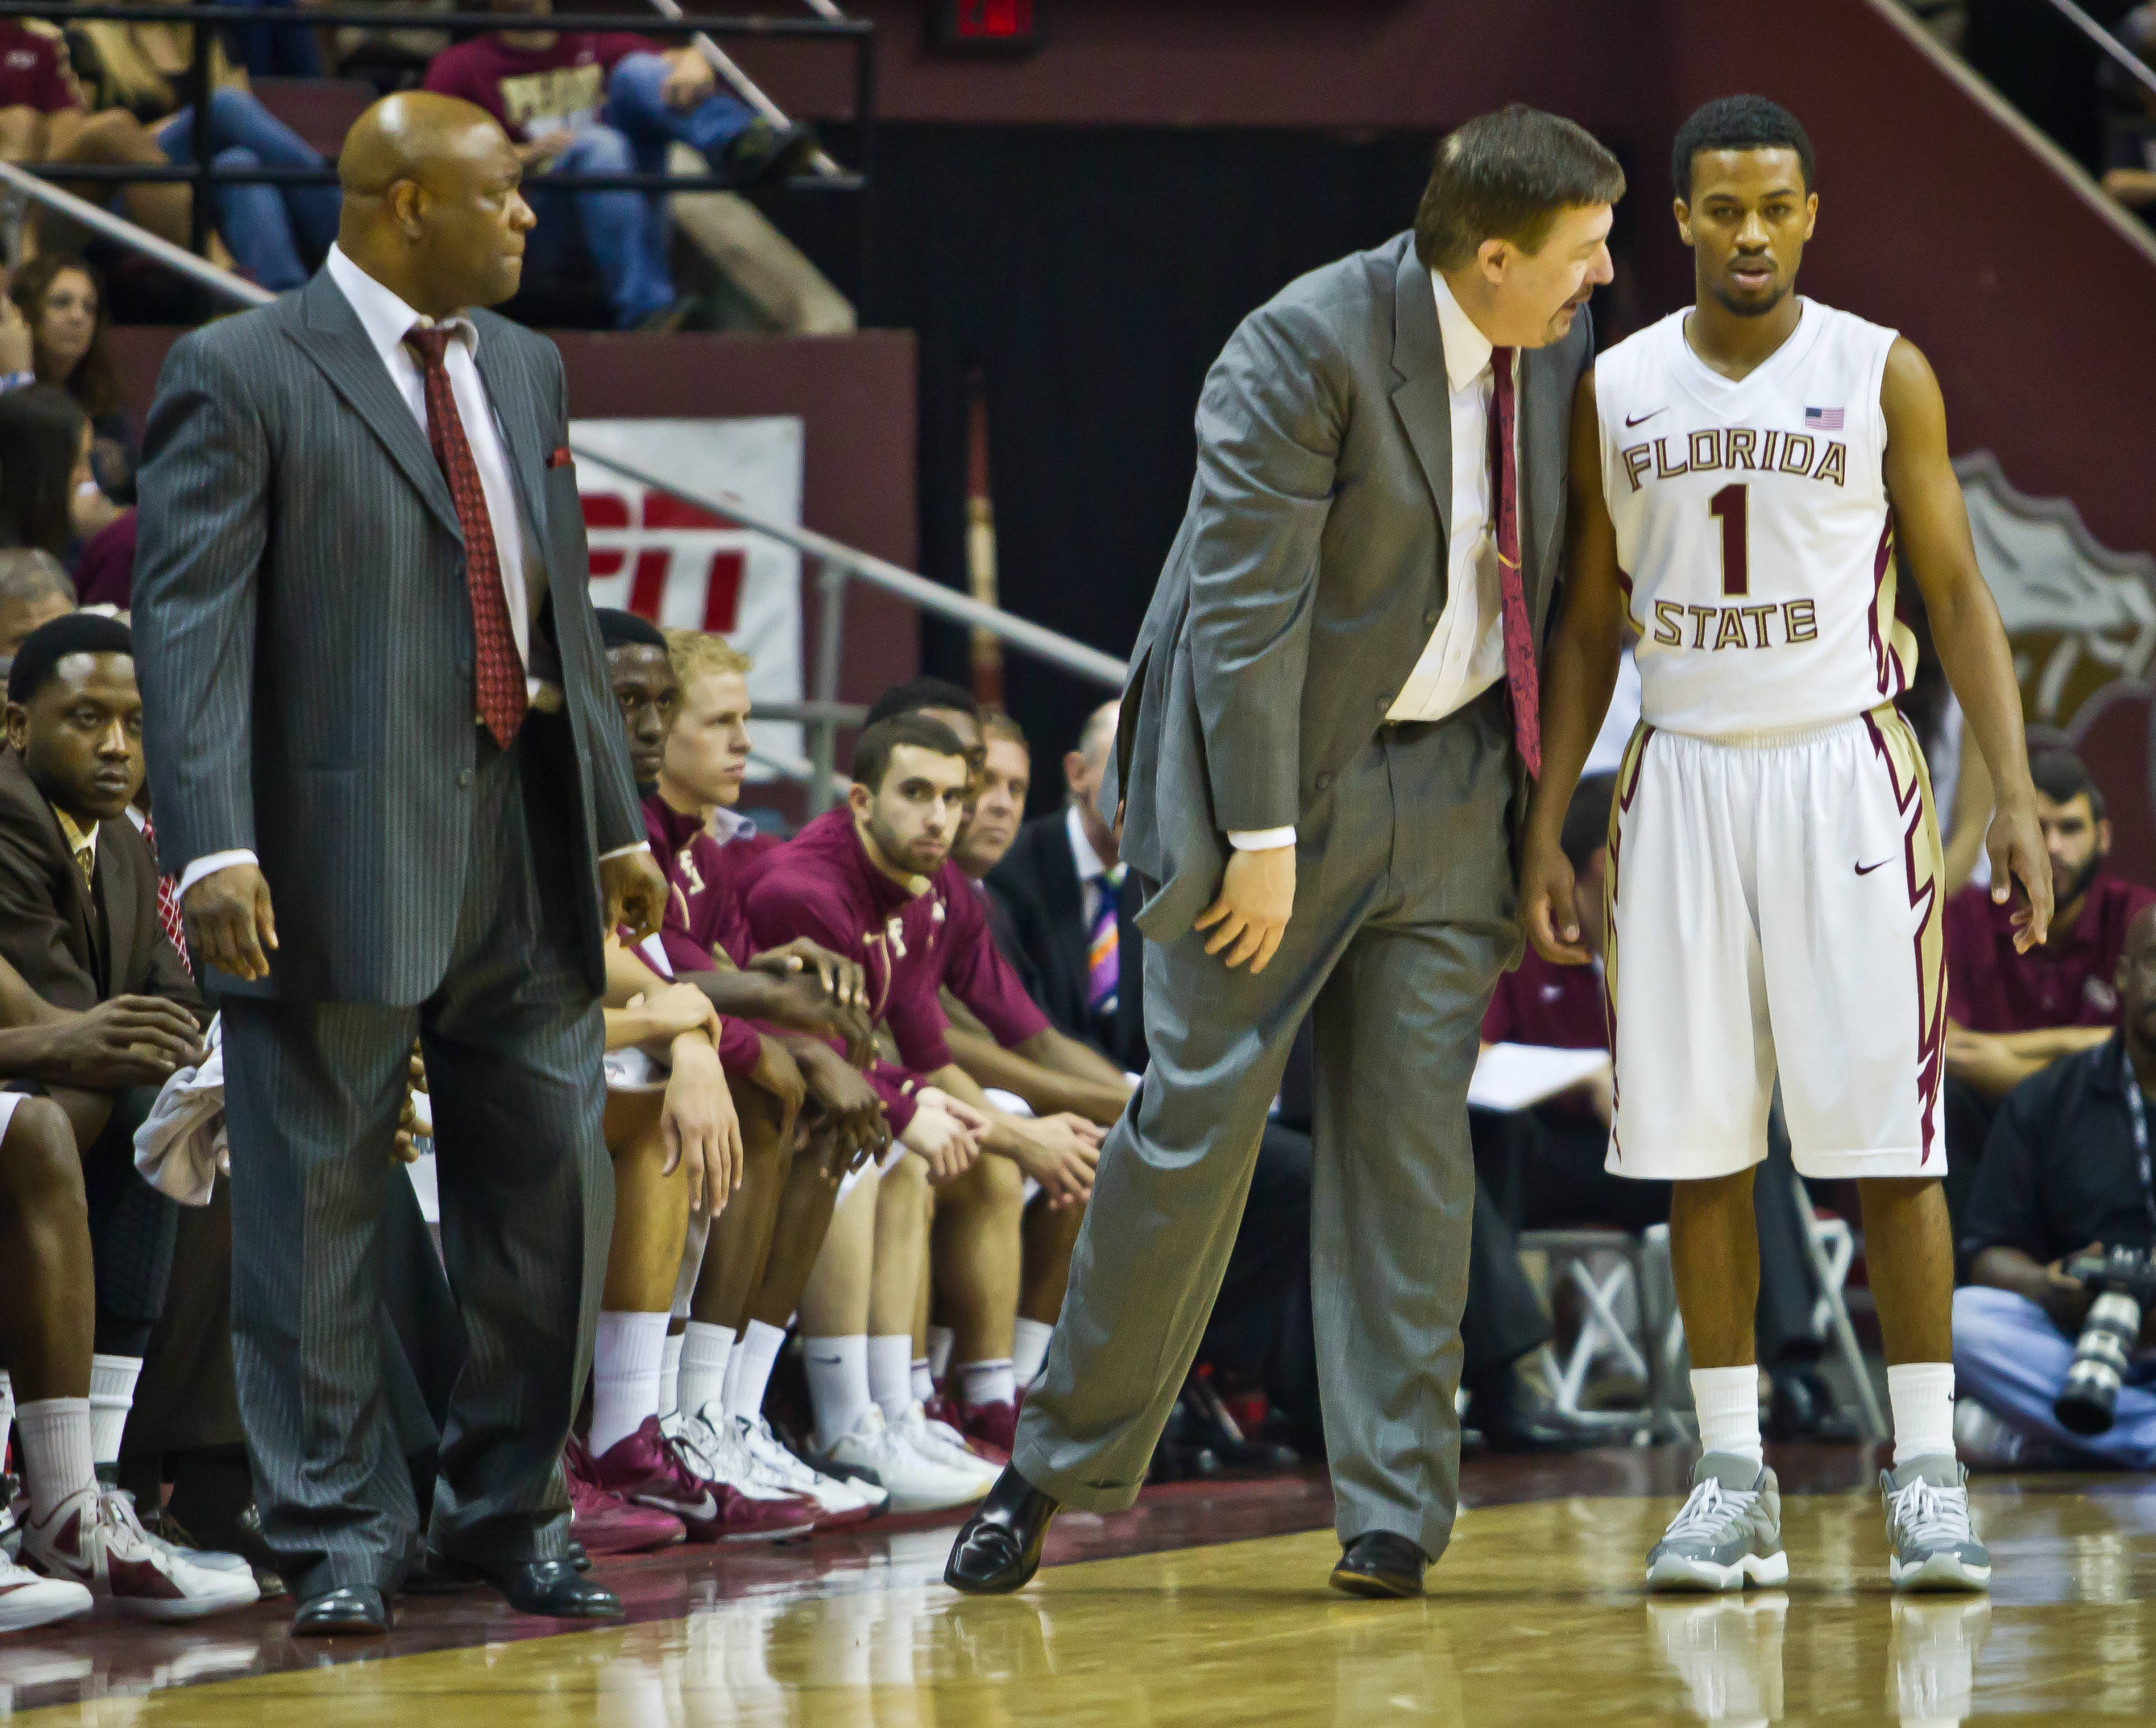 Devon Bookert (1) receives instructions from Stan Jones while Leonard Hamilton looks on.